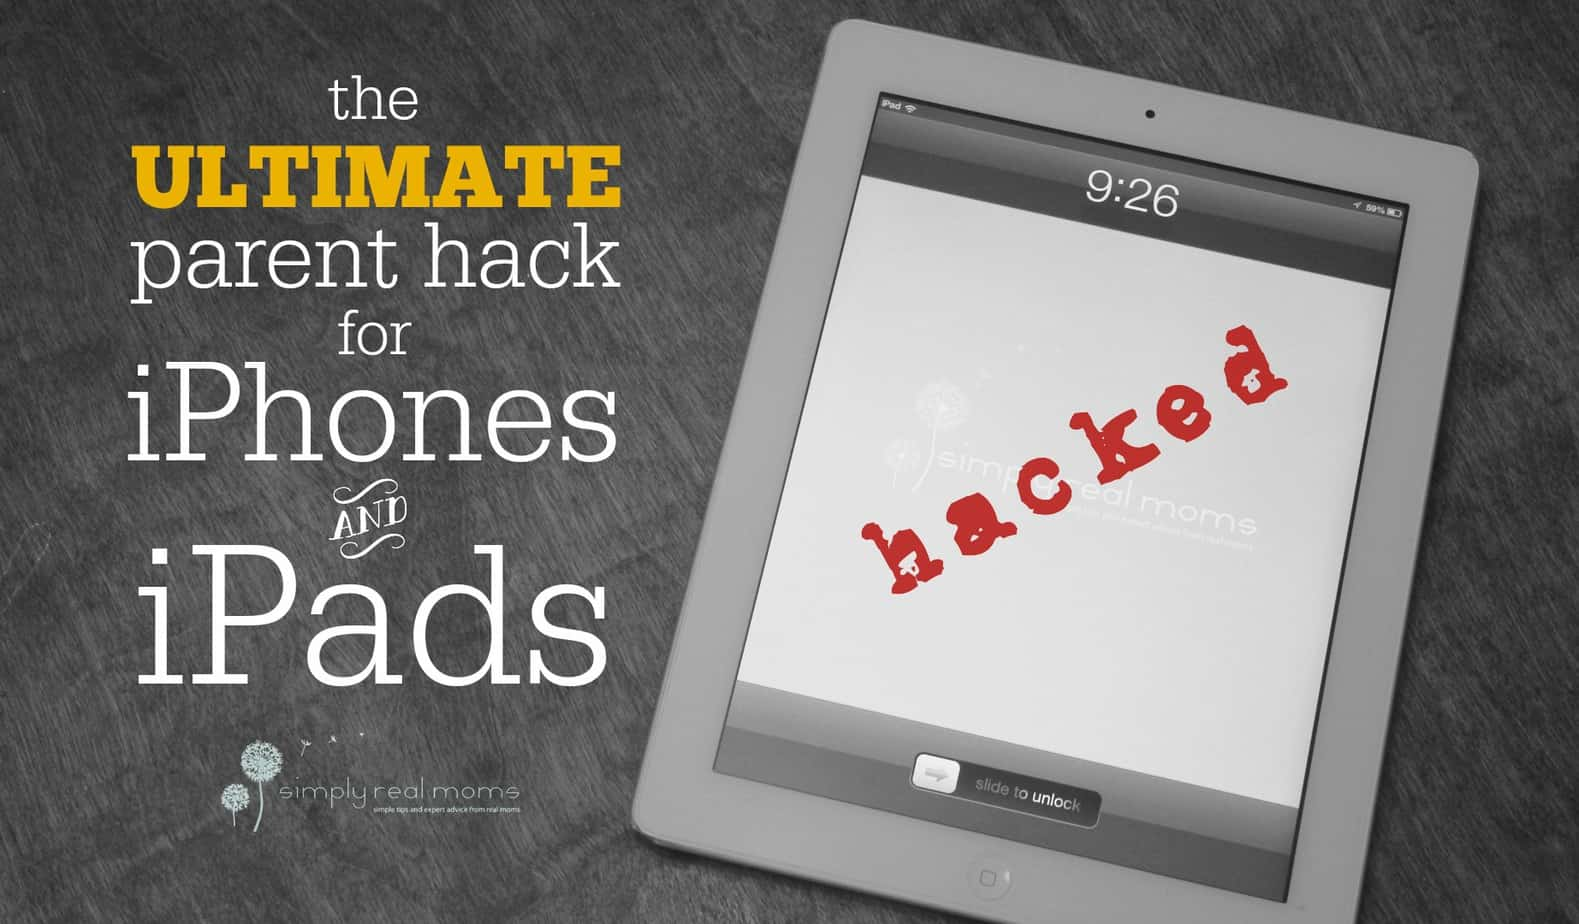 The Ultimate Parent Hack For iPhones and iPads 1